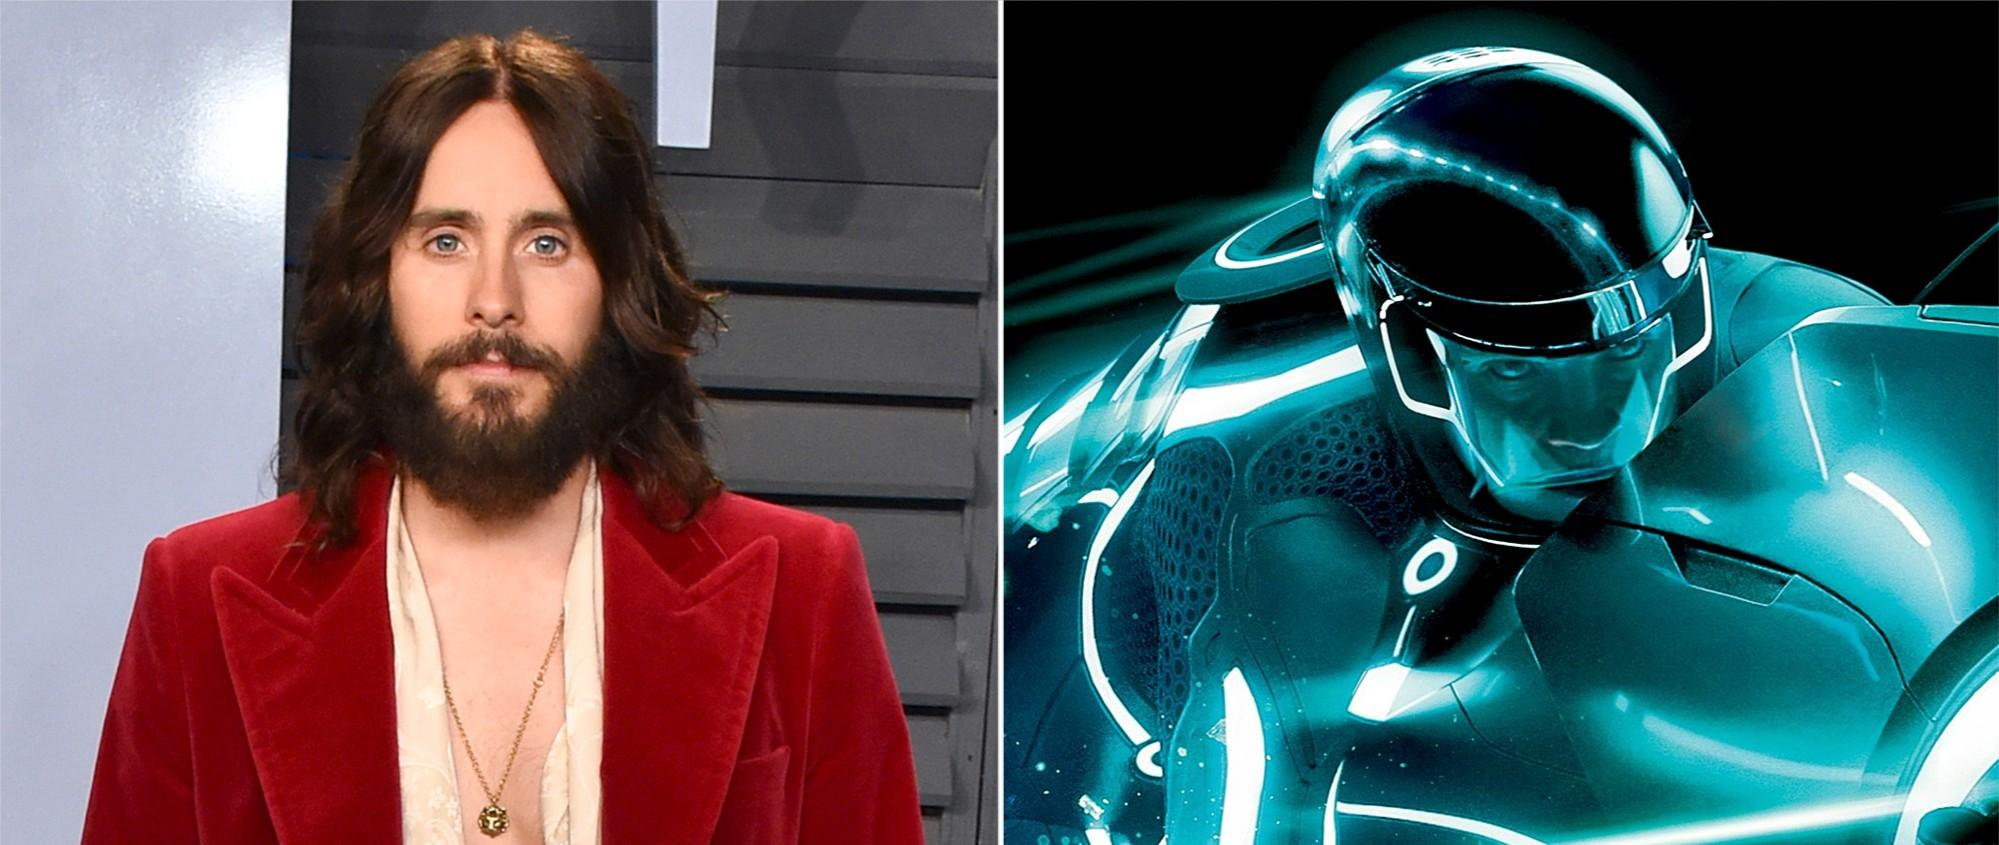 Jared Leto accidentally leaked the title of the new Tron film and fans can't believe it